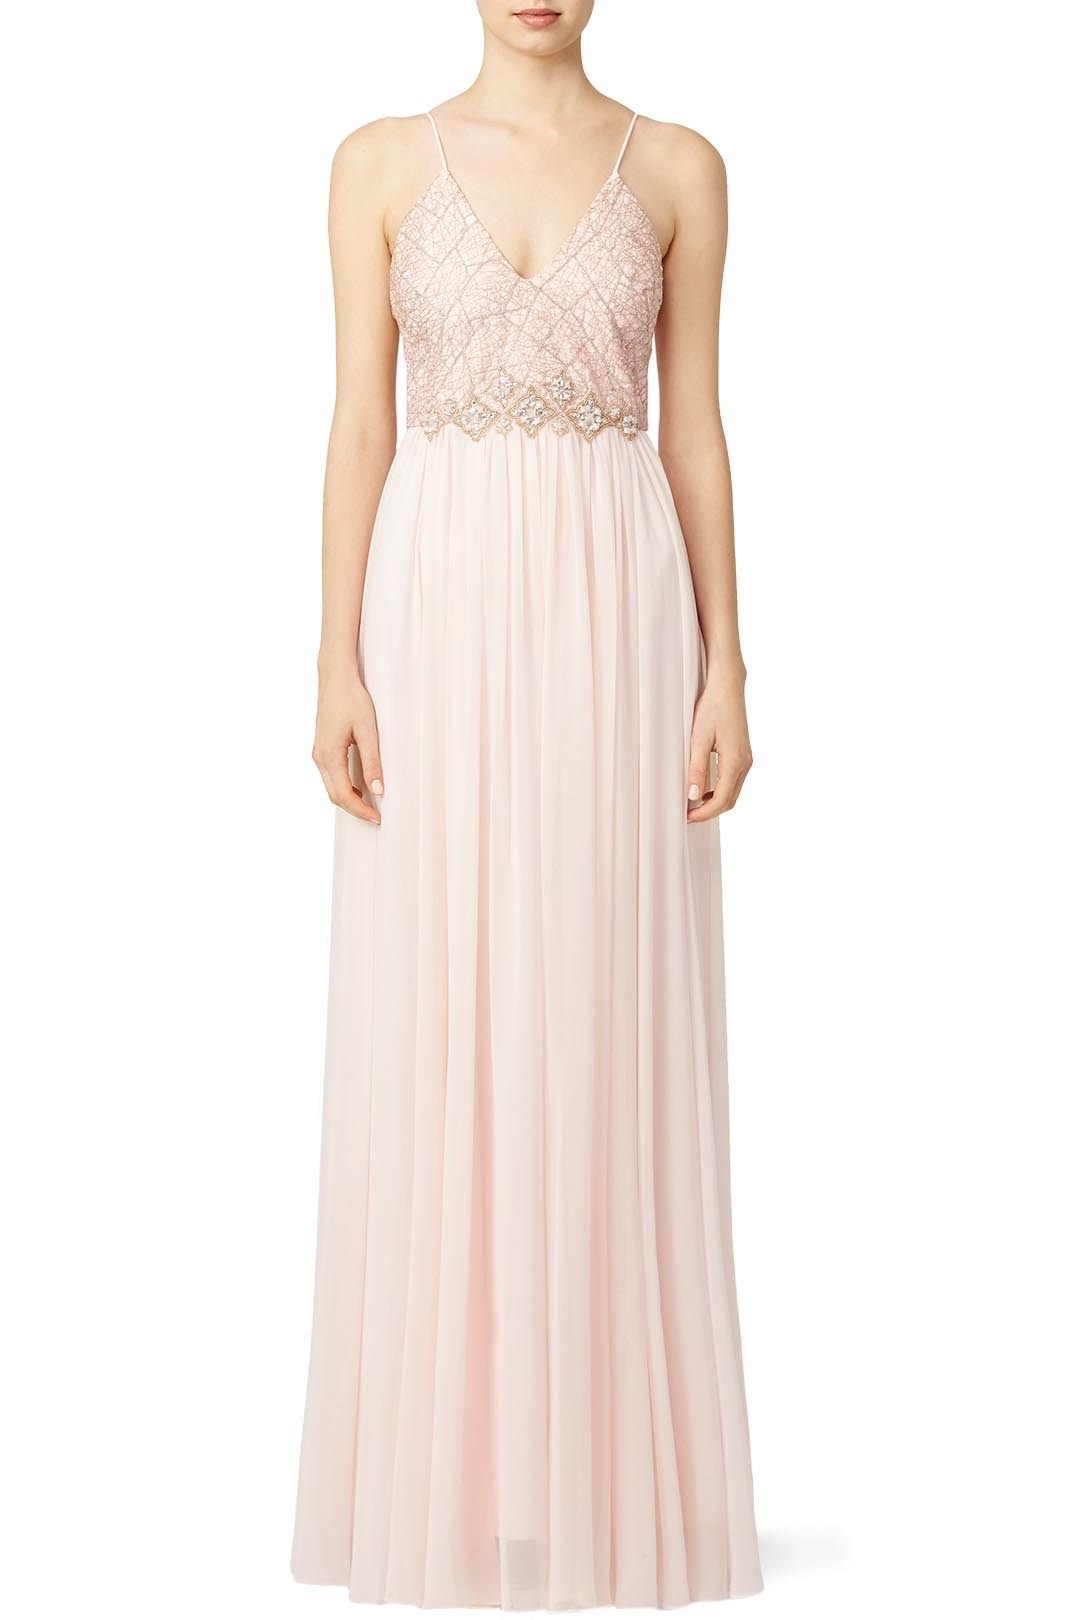 Beaded metallic and sequined bridesmaid dresses rent the runway ombrellifo Image collections